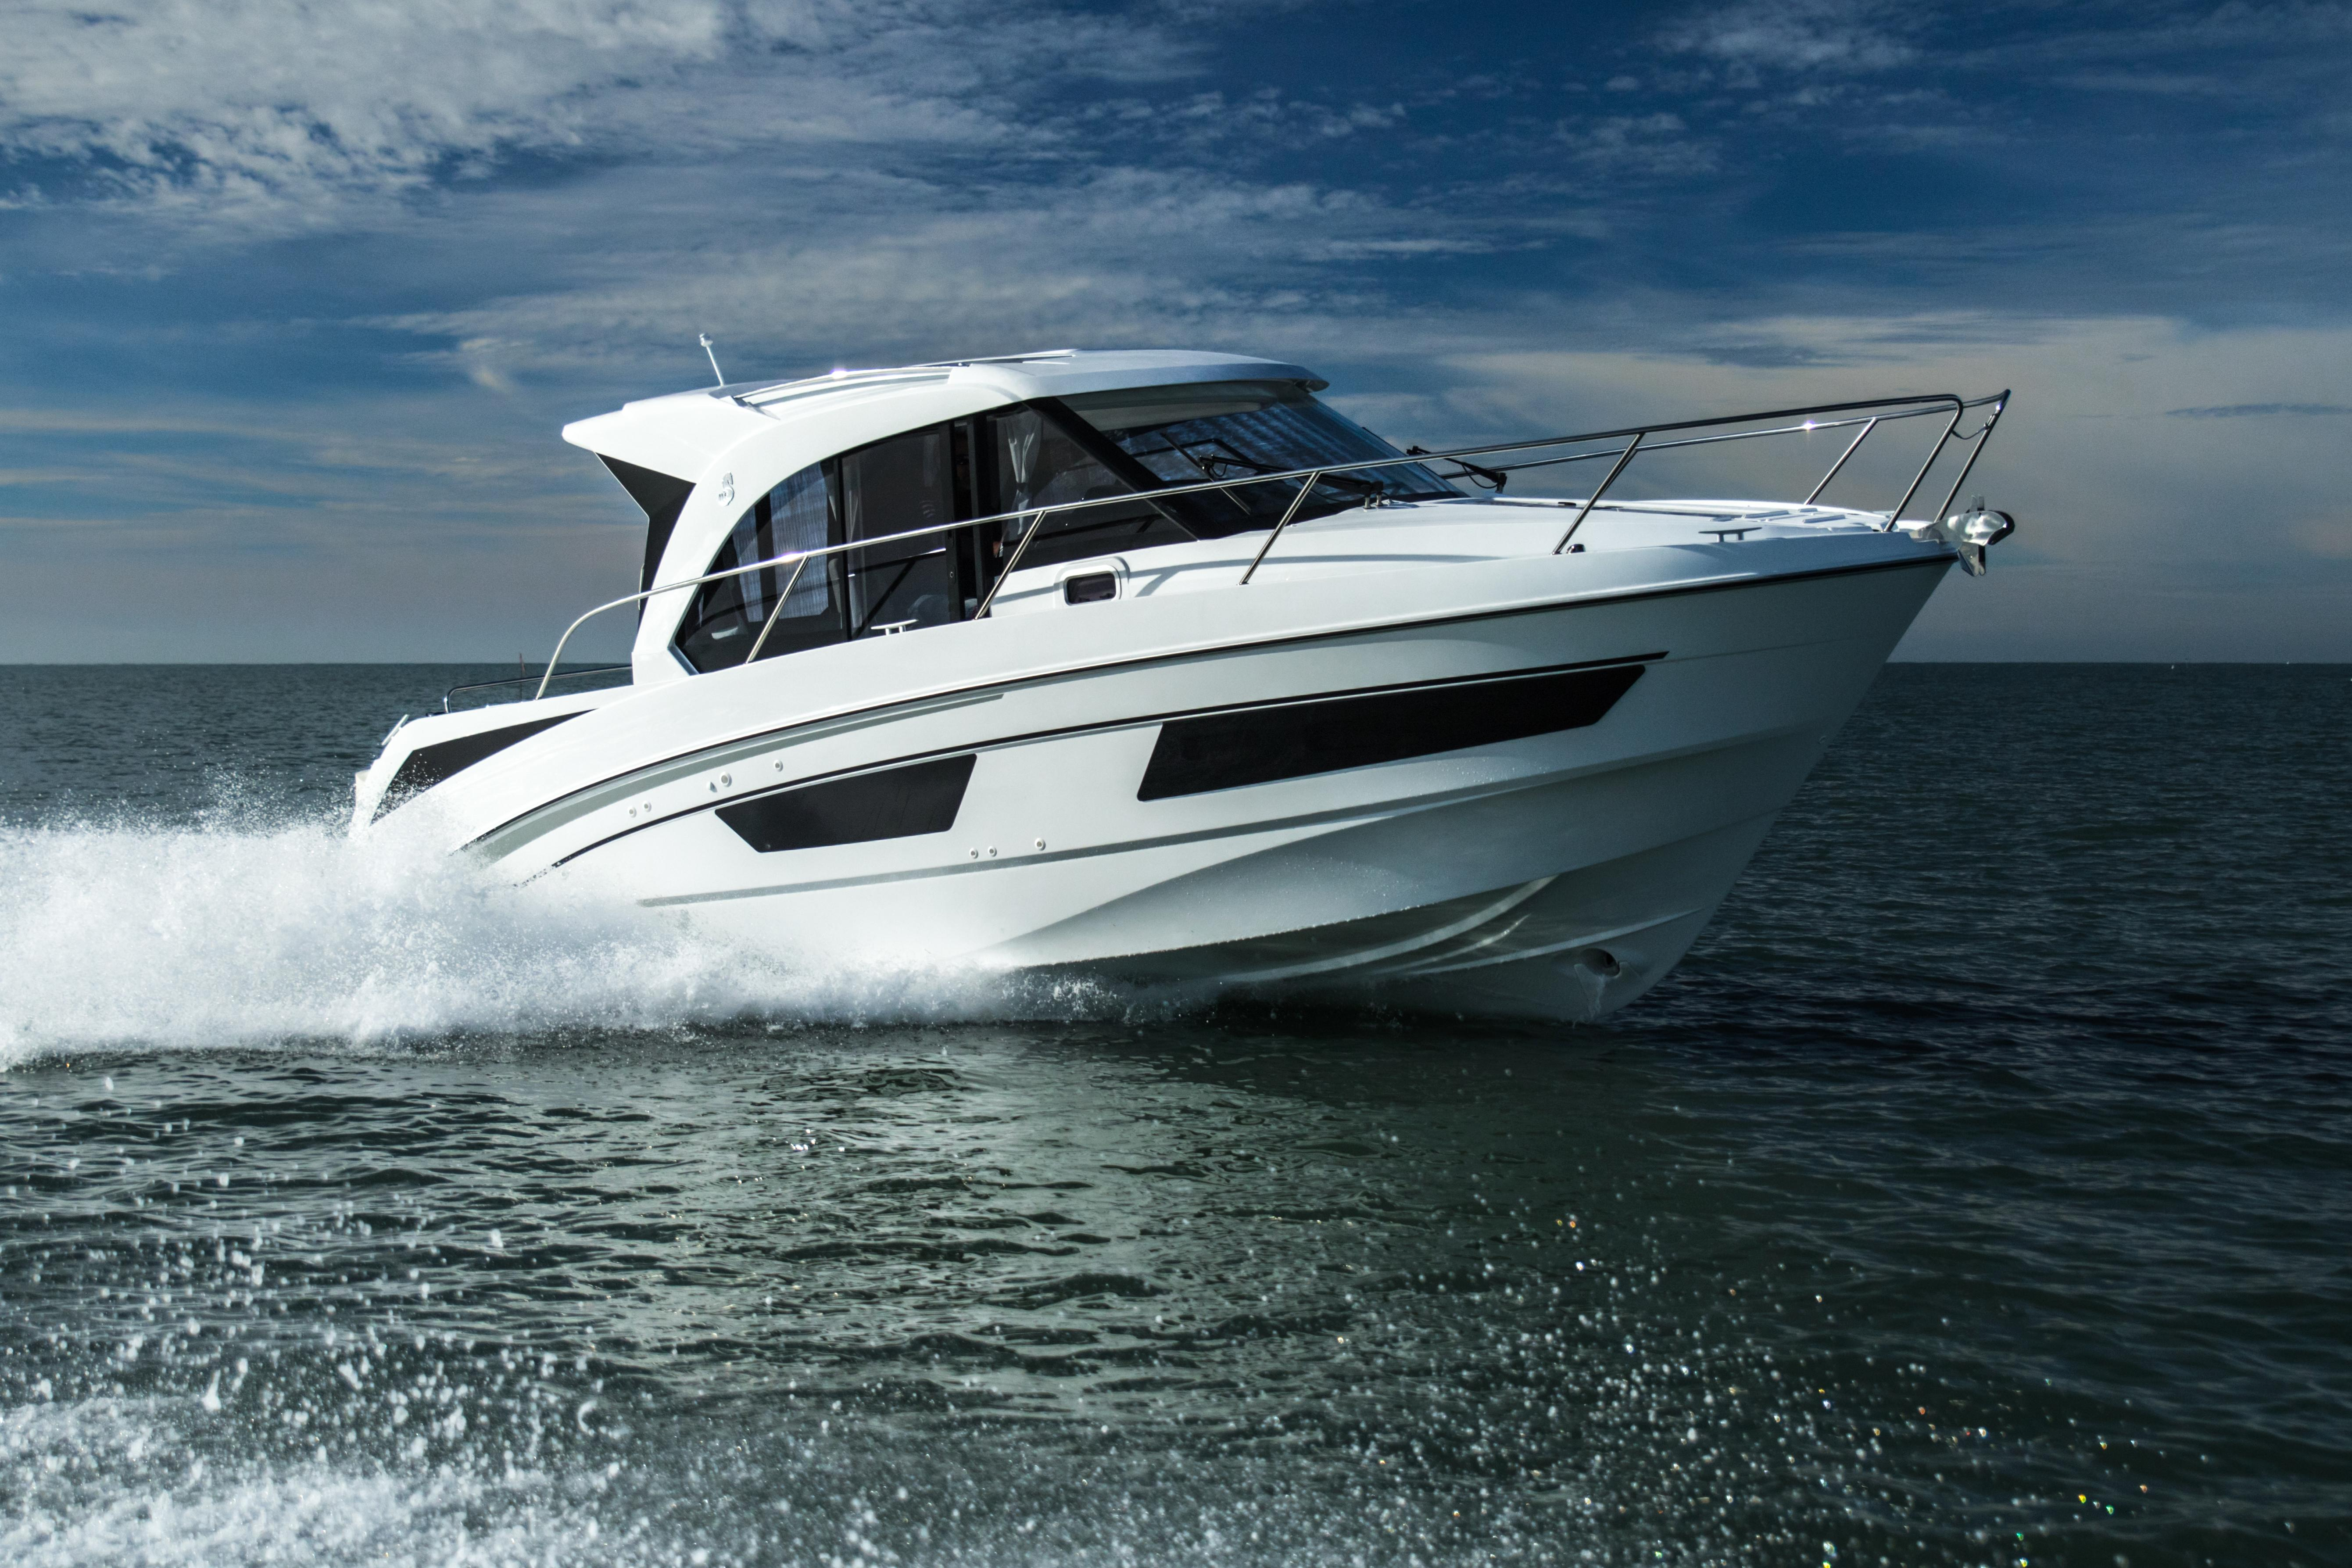 2019 Beneteau Antares 9 Power Boat For Sale Www